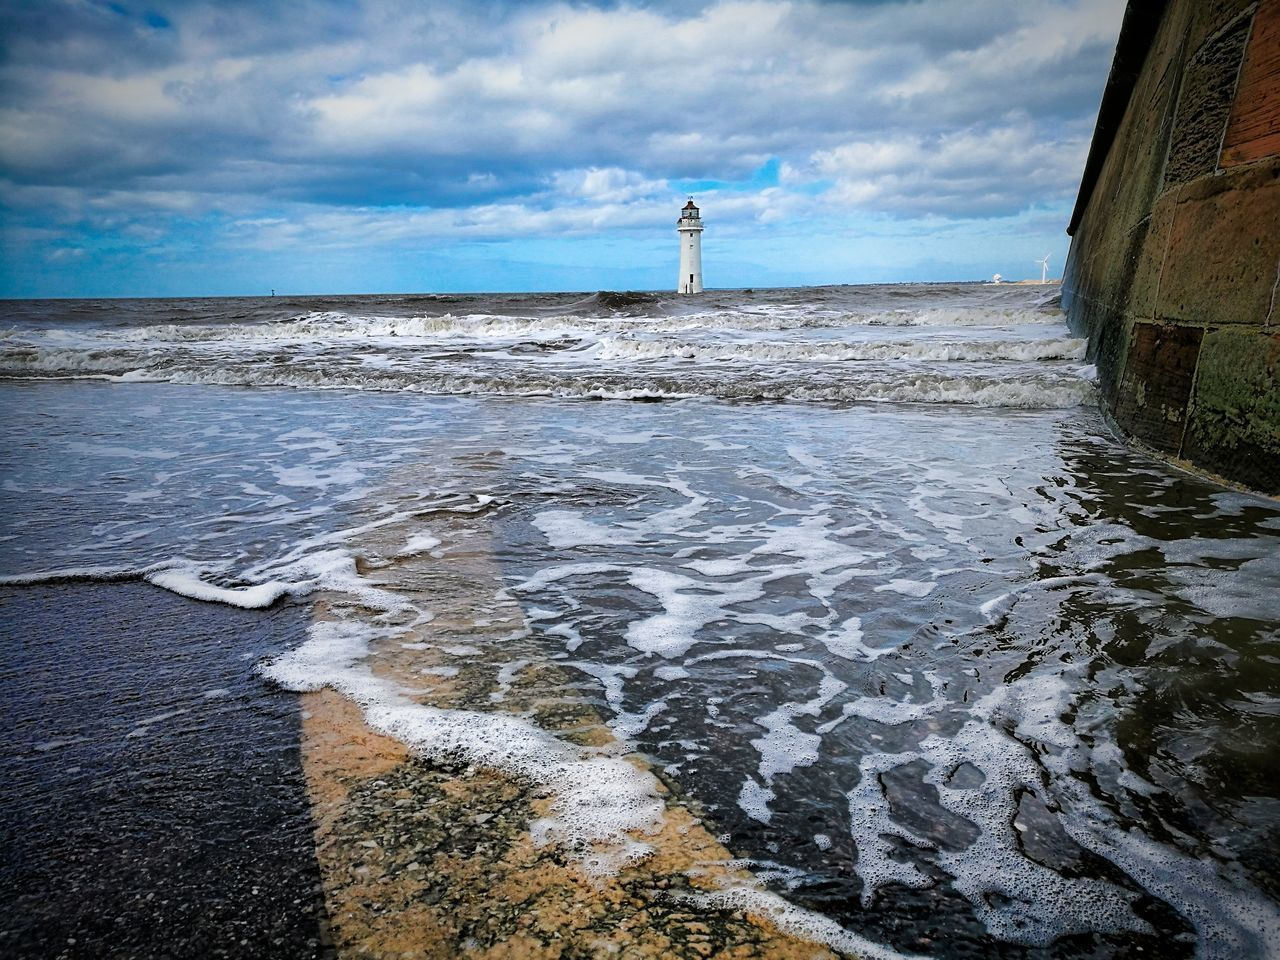 Follow the yellow line Sea Reflection Beach Outdoors Water Waves Crashing Waves Seaside Sea And Sky Leica Lens Huwei P9 EyeEmNewHere EyeEm Gallery Lighthouse Sky Nature Horizon Over Water Beauty In Nature Adult Day